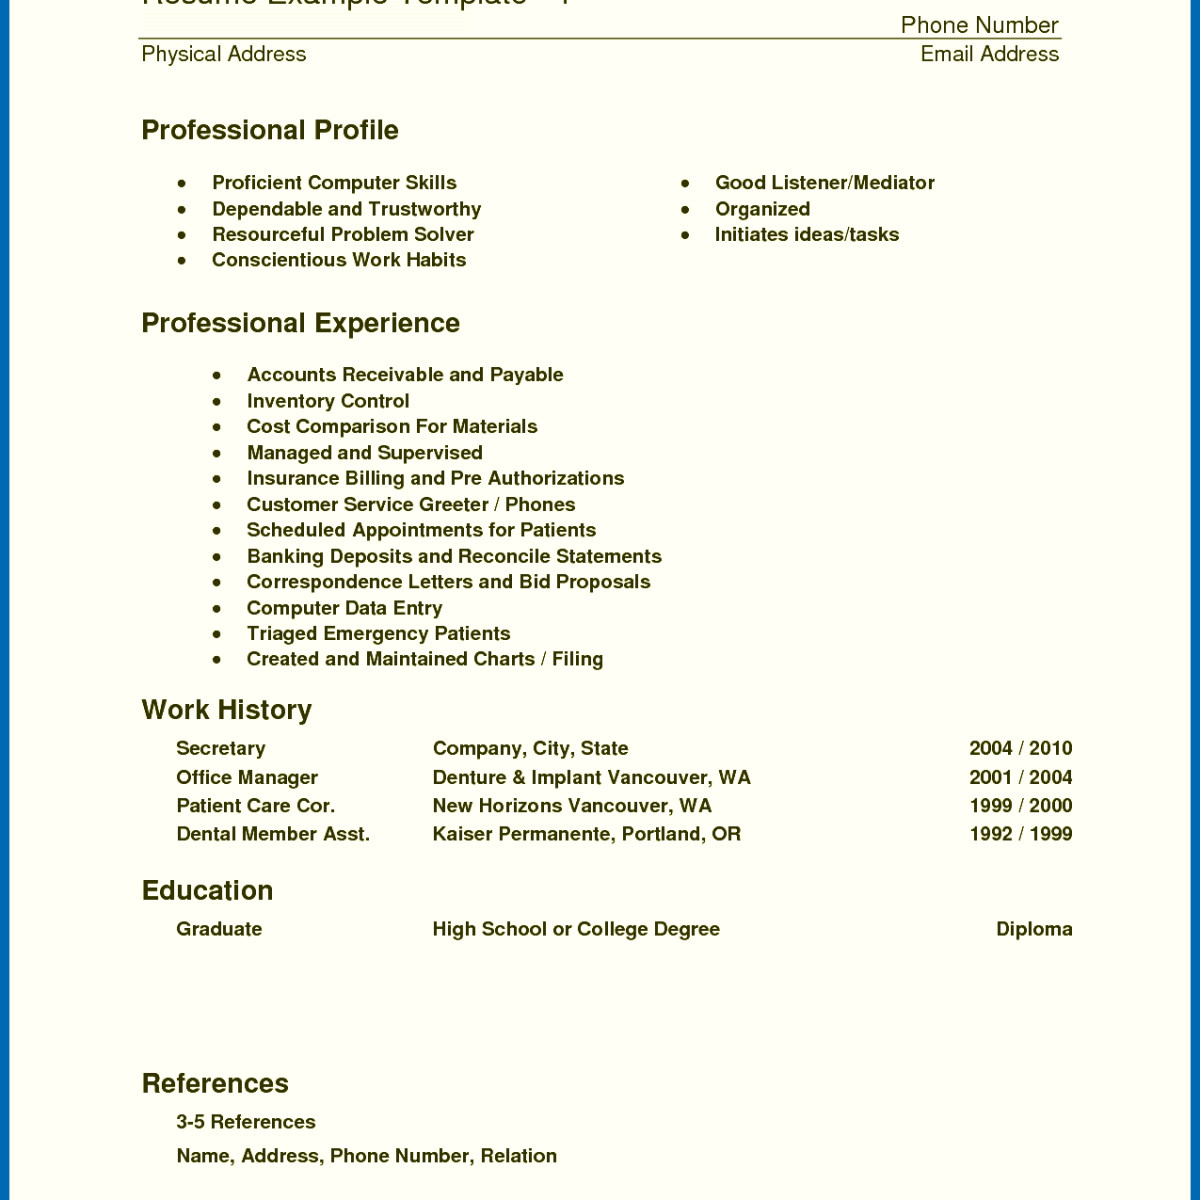 Medical assistant Duties for Resume - Resume Medical assistant Examples Awesome Resume Skills for Customer